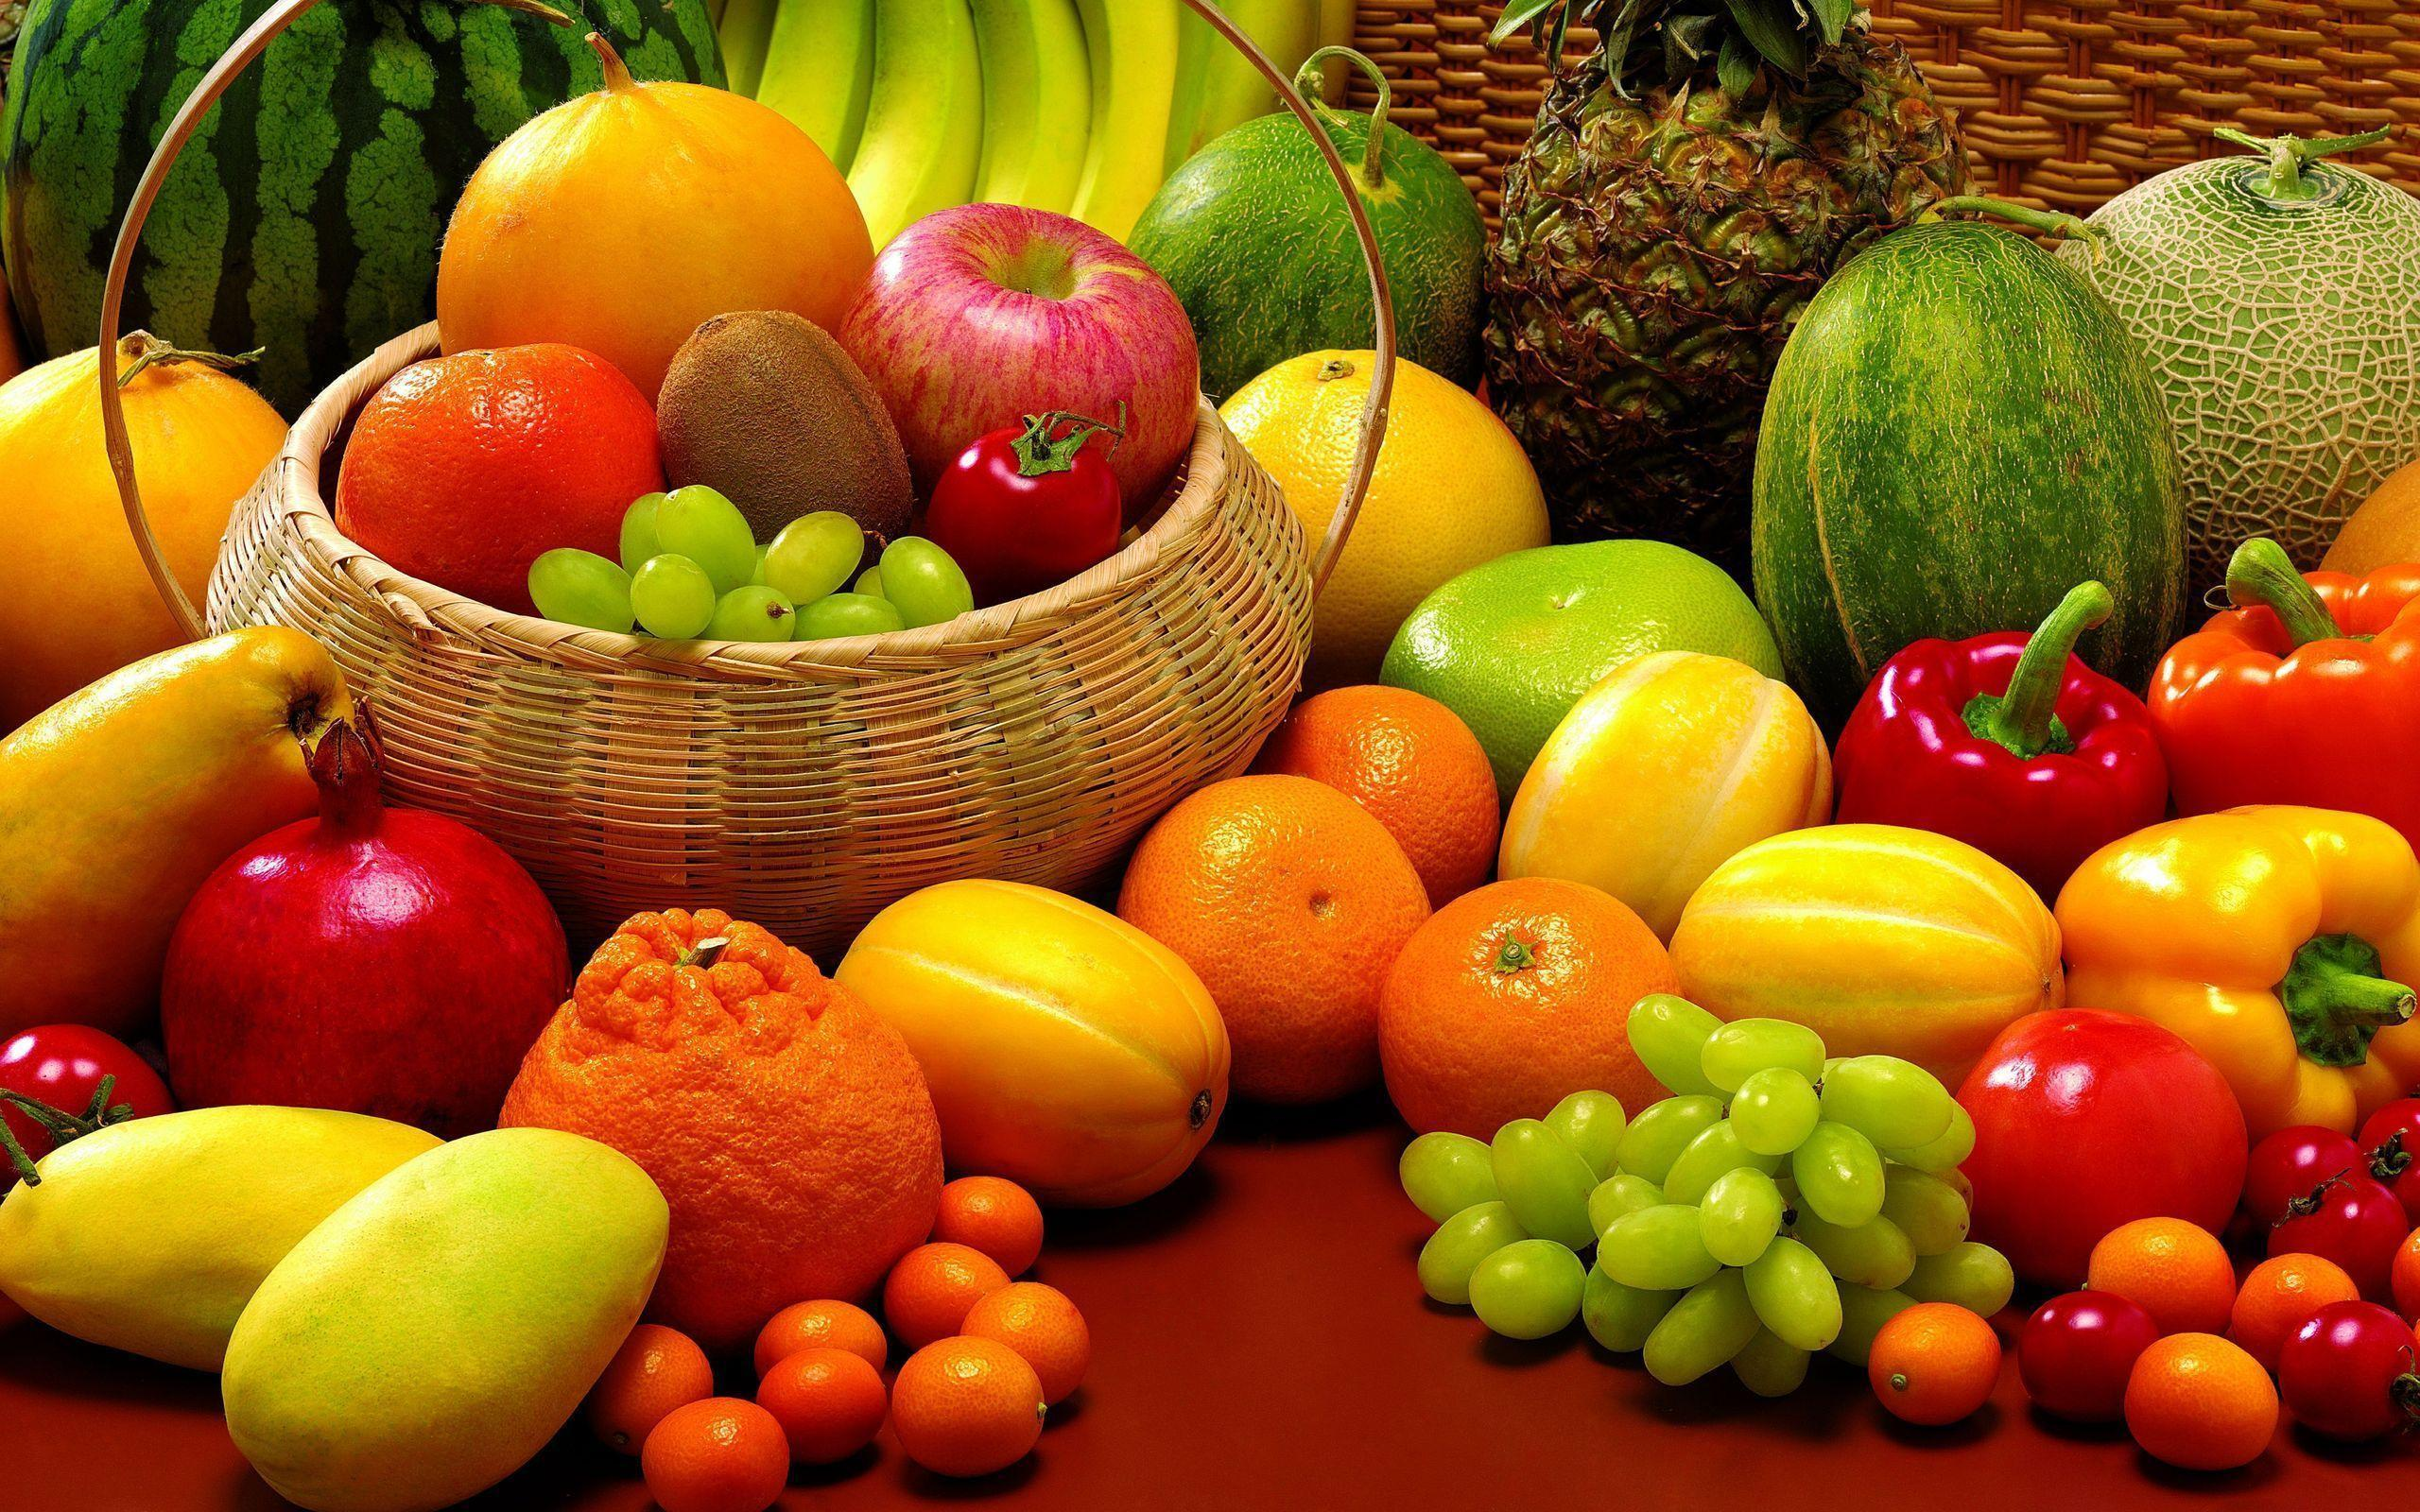 205 2059582 339 fruit wallpapers fruits pictures high resolution